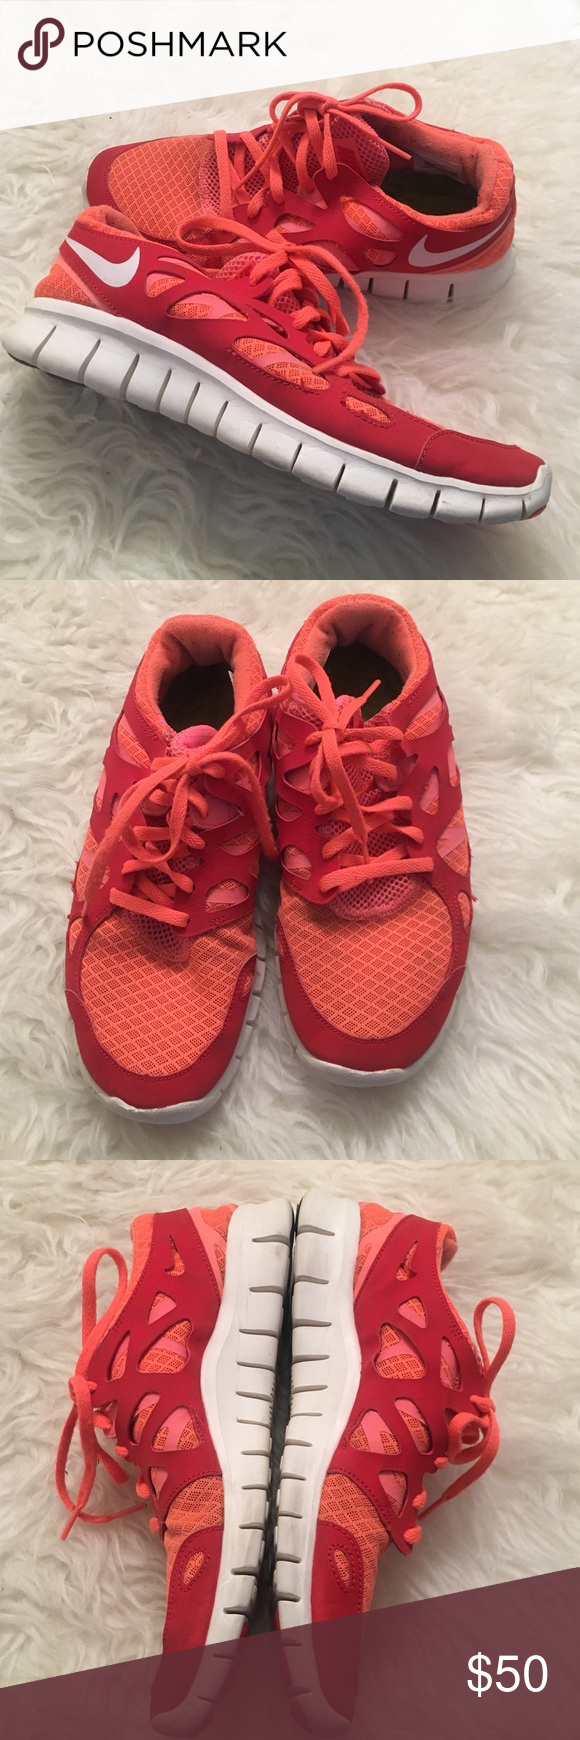 Barely worn Nike Free Run Orange, pink and red toned Nike sneakers. Barely worn in great condition. Size 9 and fit true to size. Comfortable and great for working out Nike Shoes Athletic Shoes